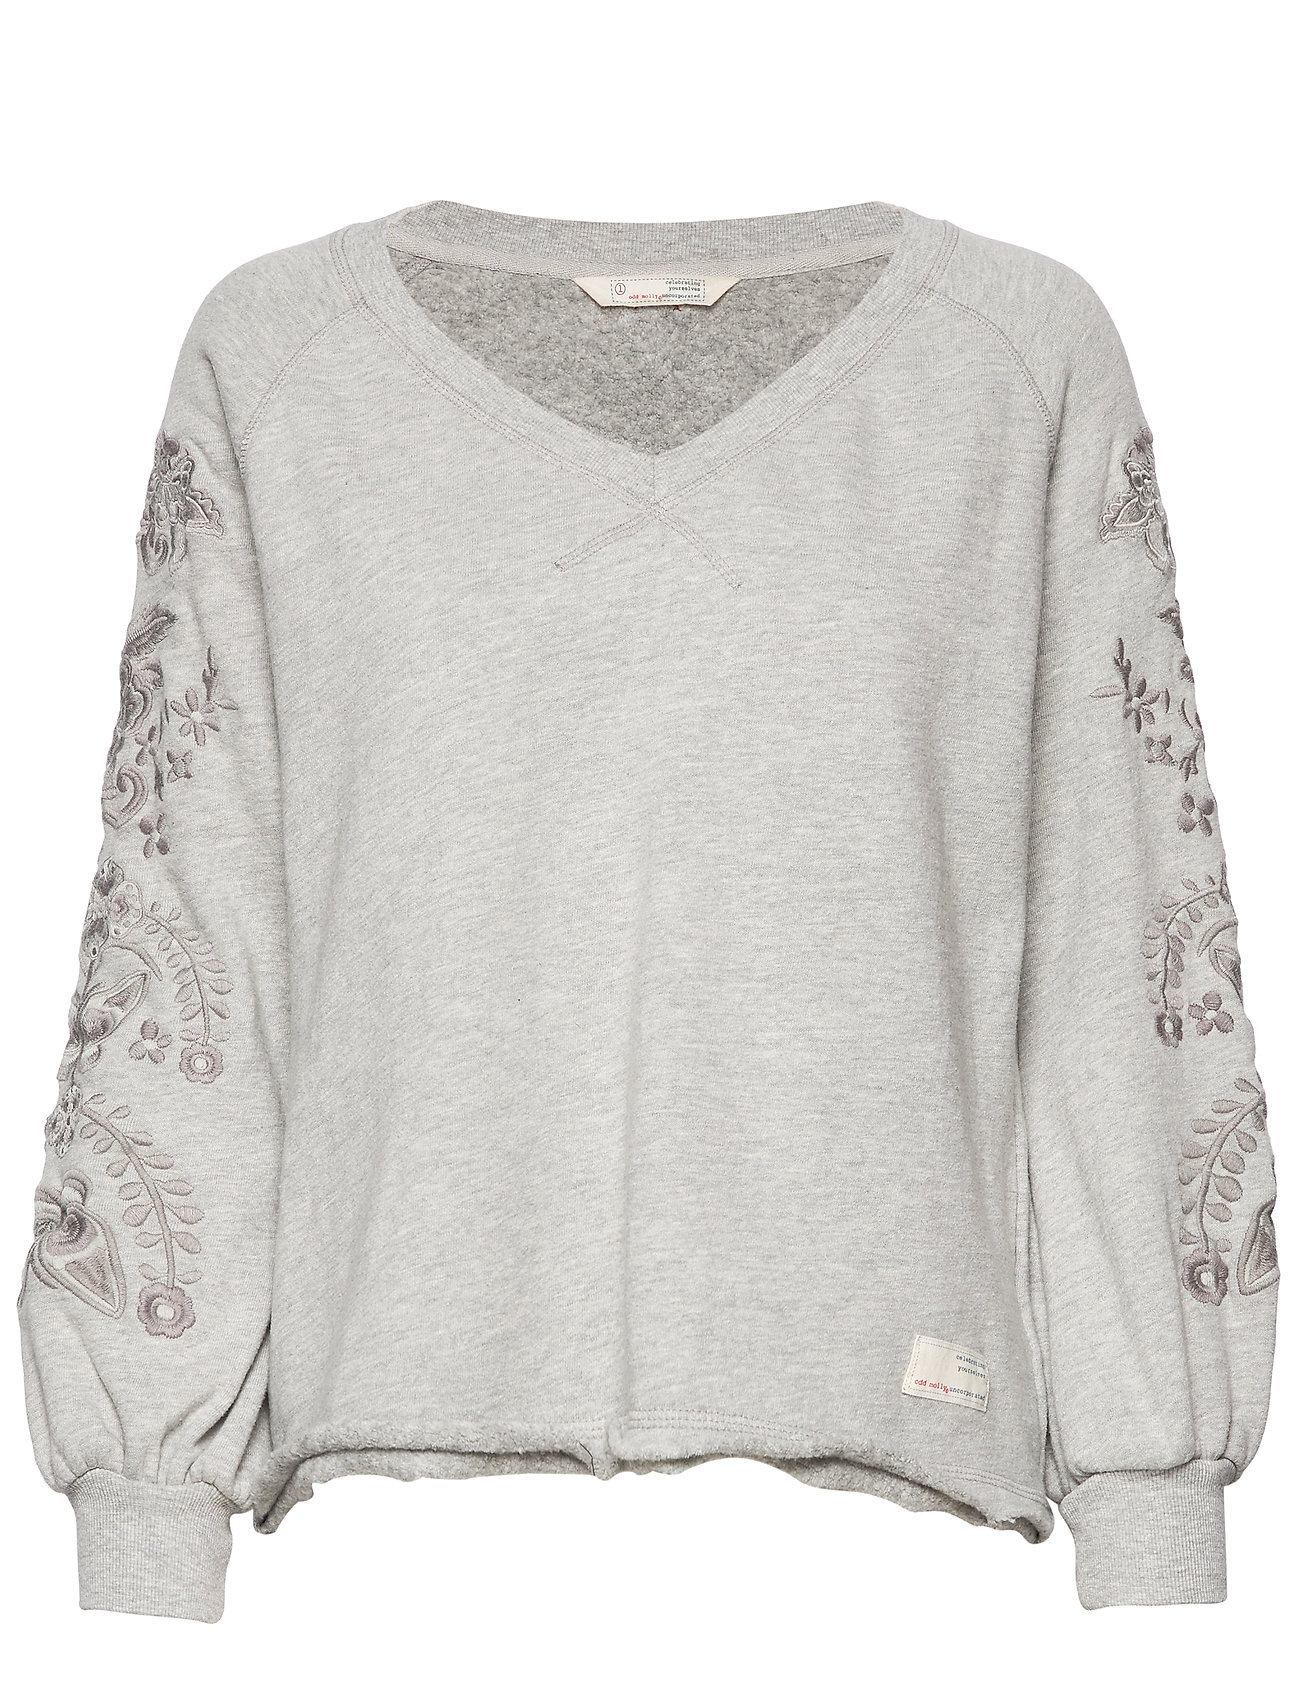 ODD MOLLY Sunday Snooze Sweater - LIGHT GREY MELANGE